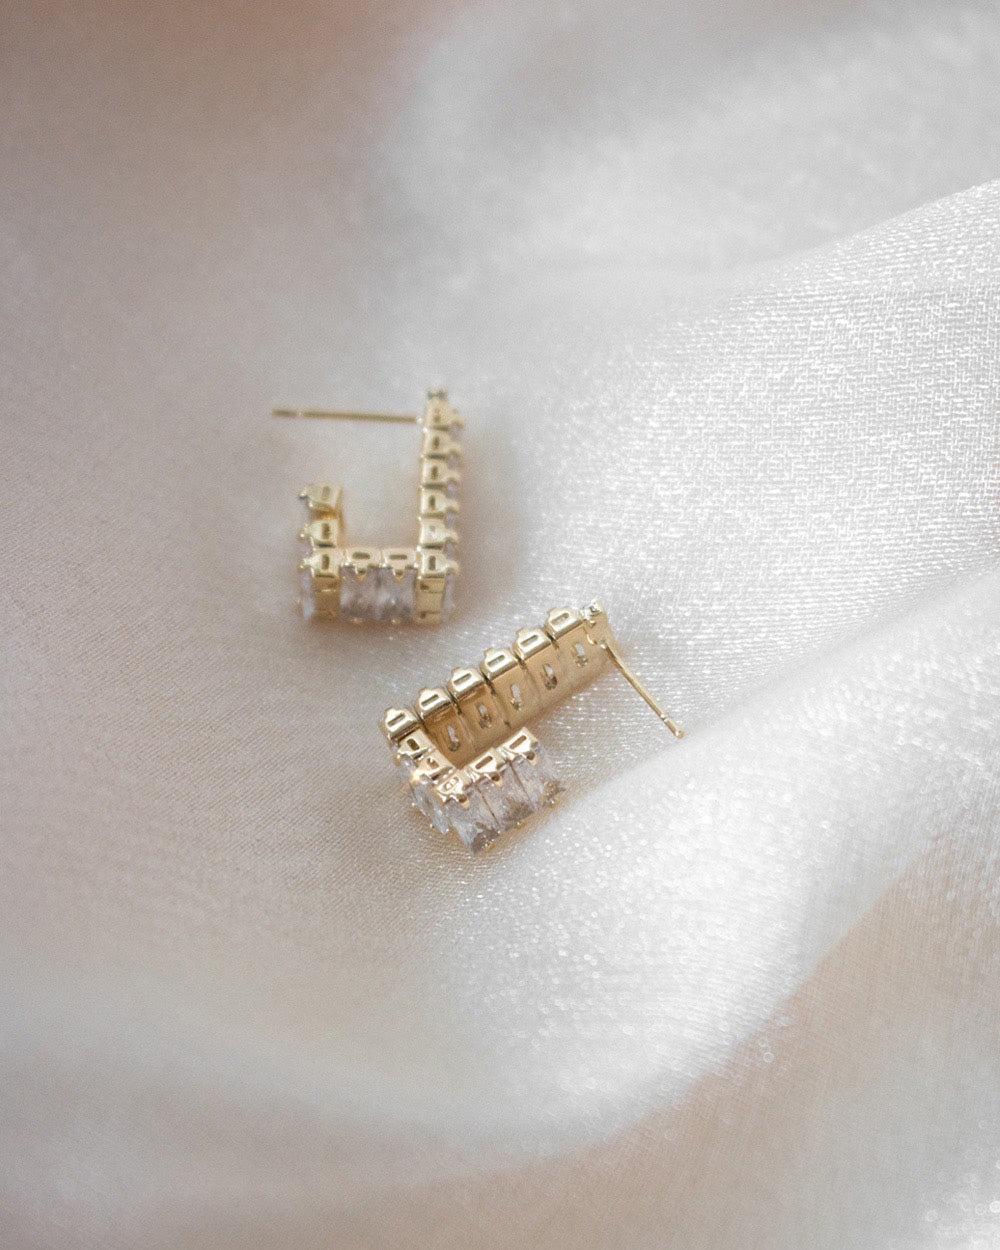 Sparkly square edge hoop earrings - Dazed by The Hexad